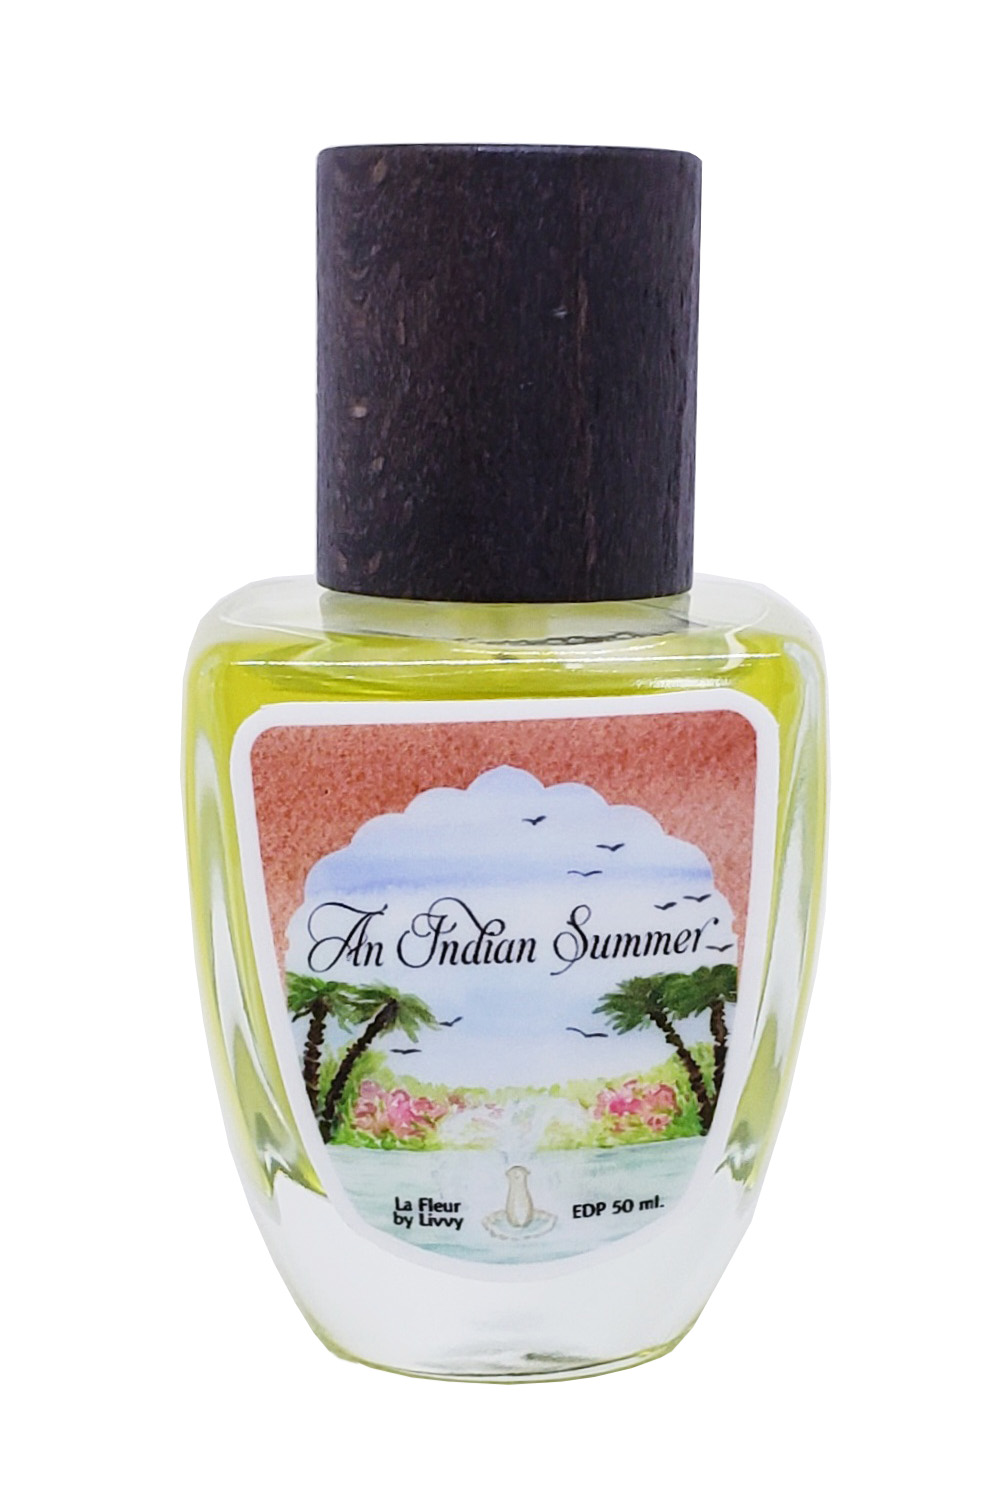 Indian Summer by La Fleur by Livvy.